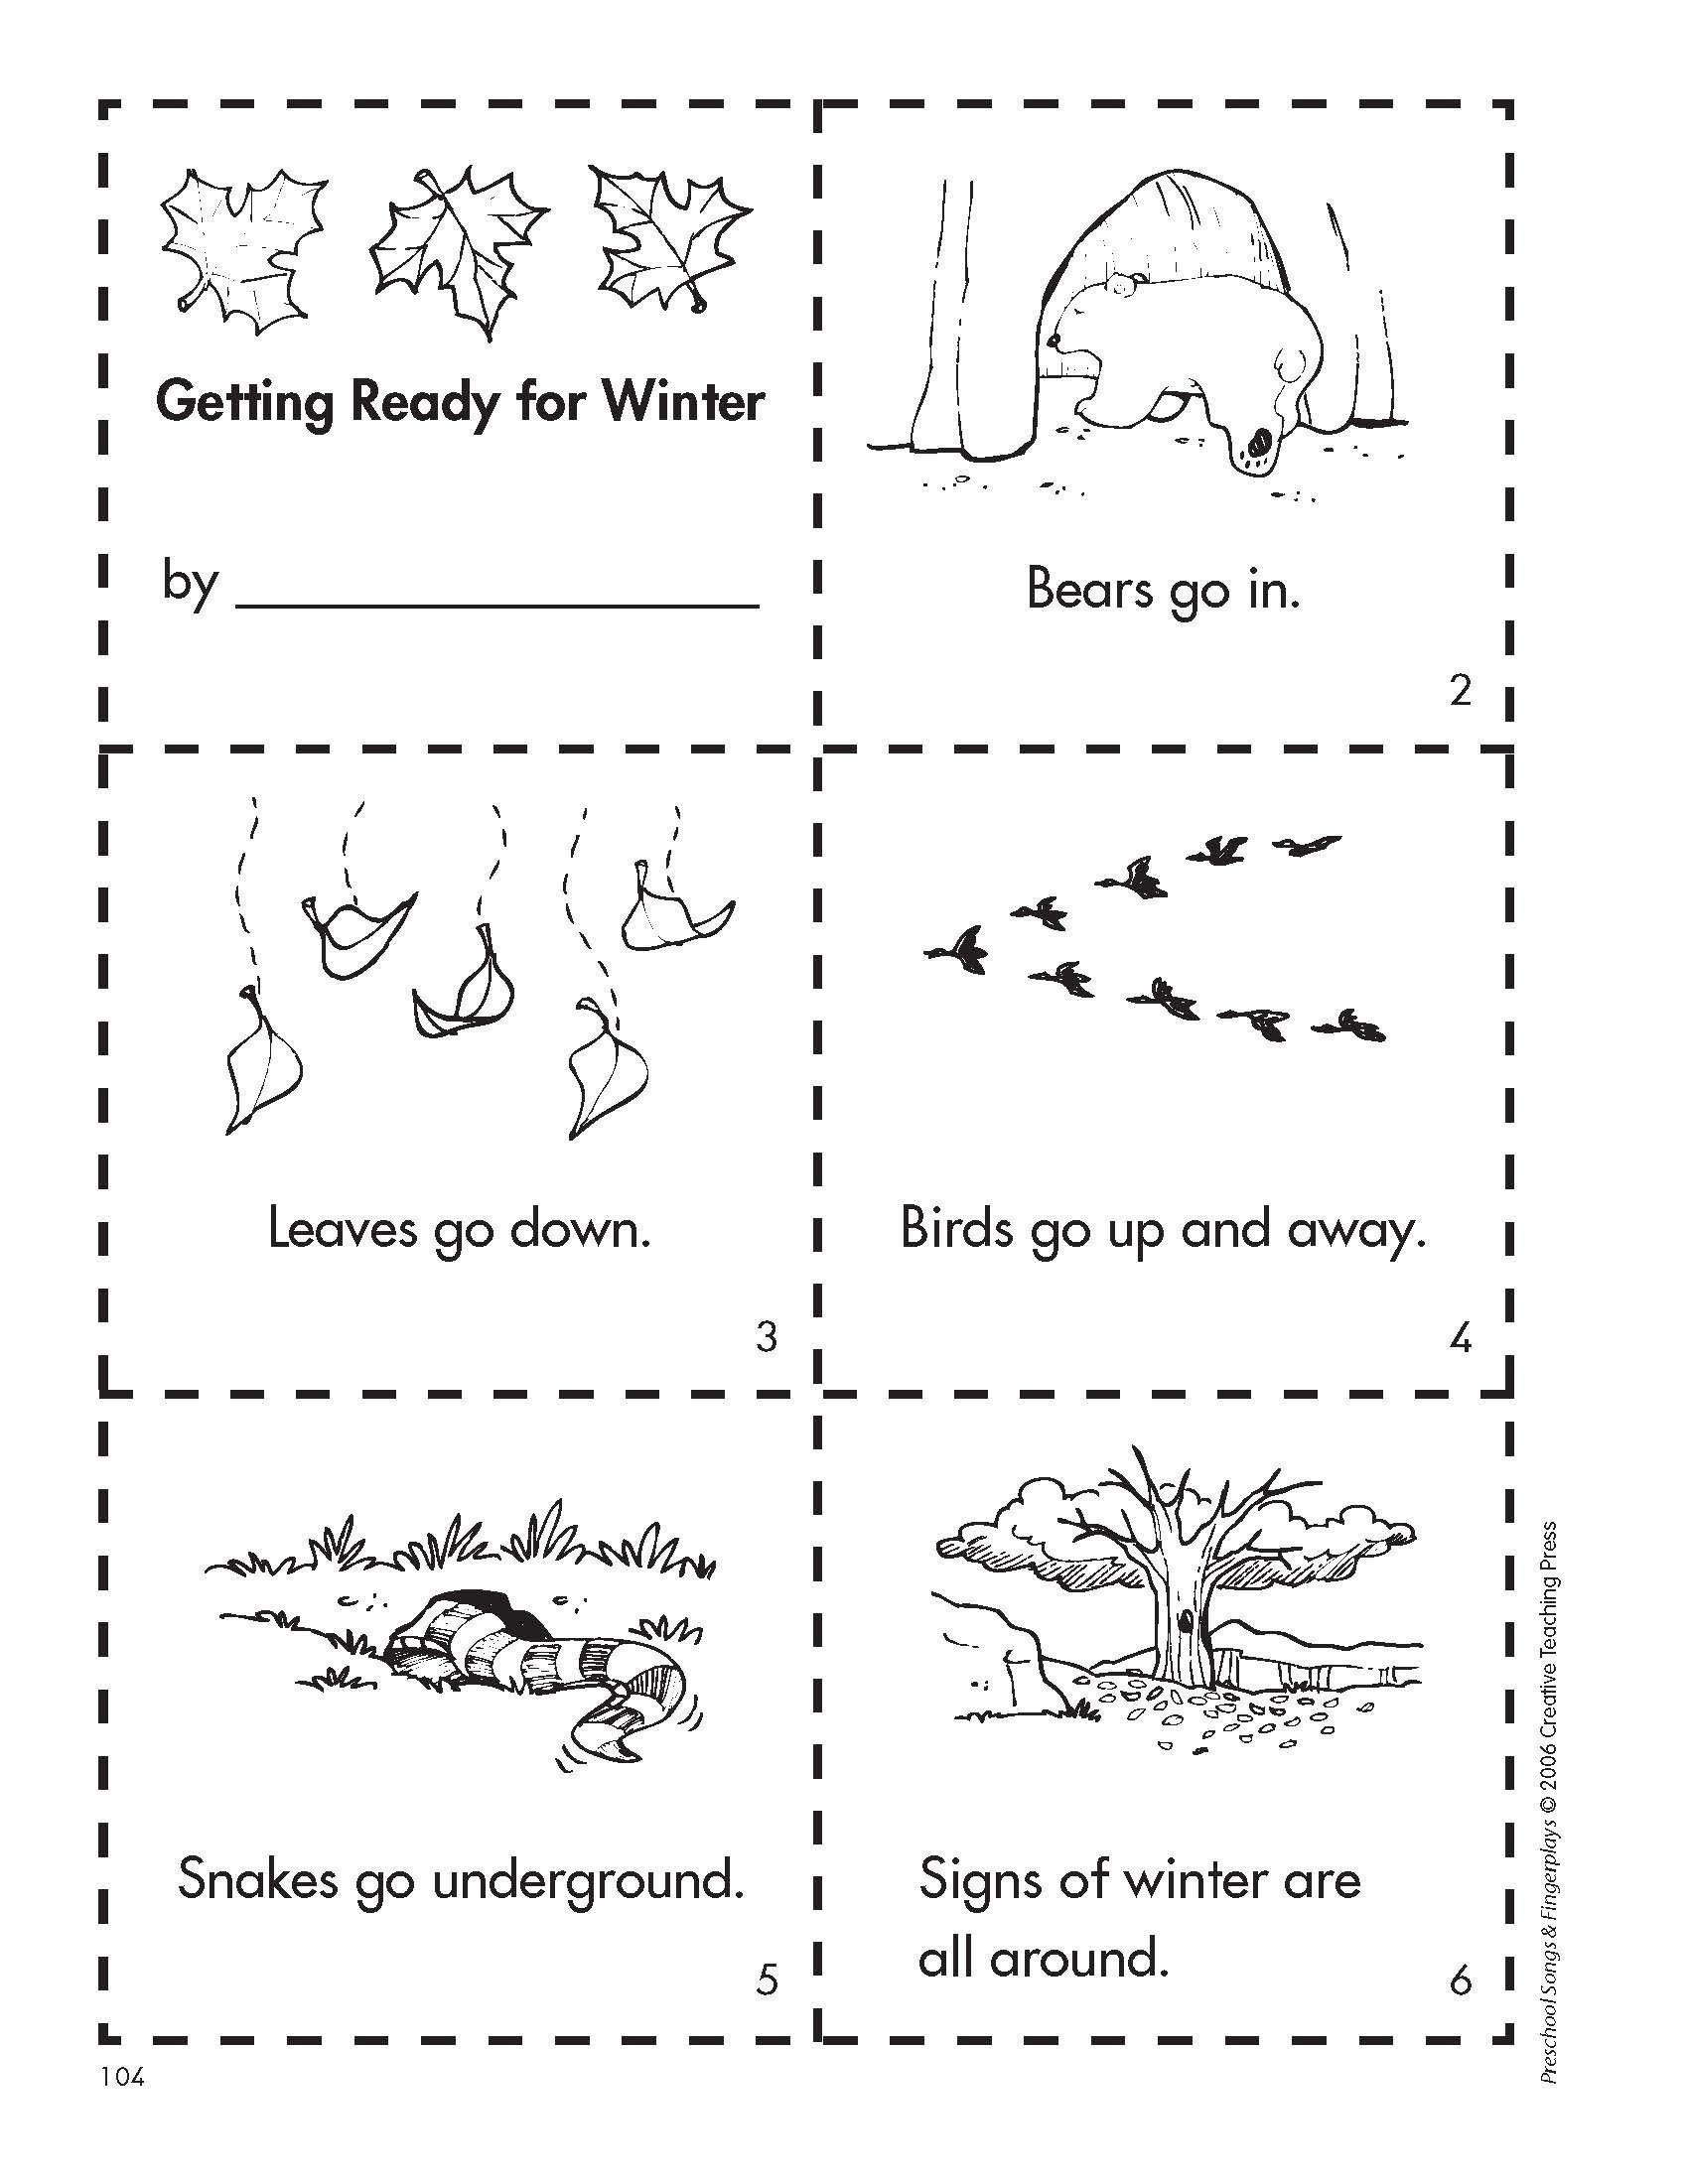 Animal Habitat Worksheets for Kindergarten Get Ready for Winter with This Free Minibook Reproducible